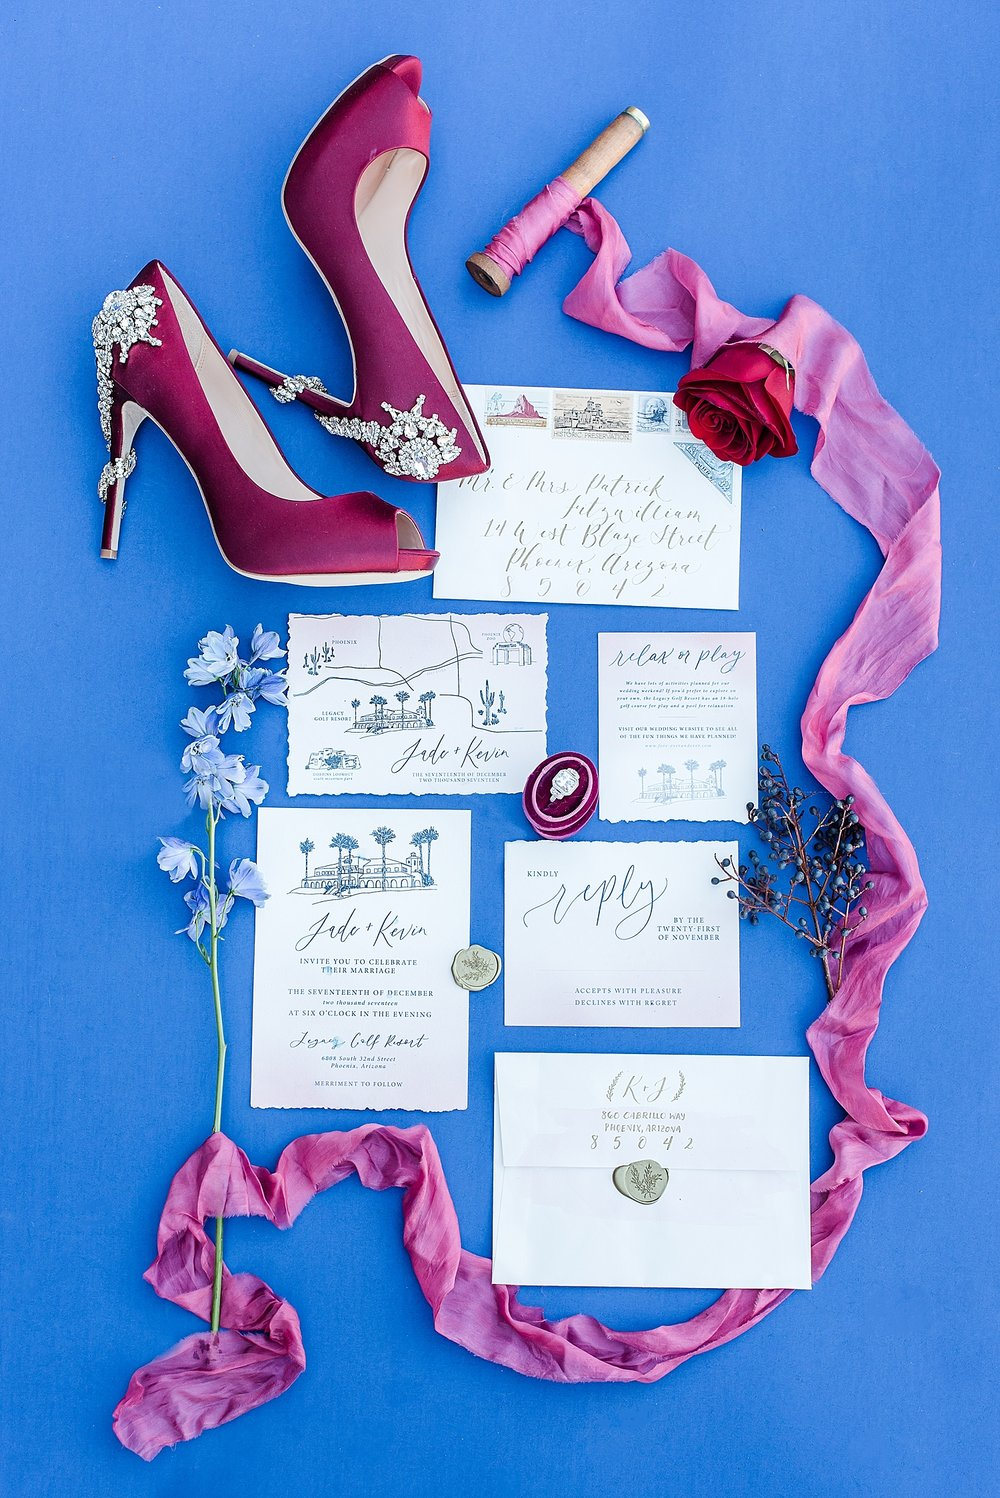 The elegant calligraphy by Holly of Sablewood Paper Company really elevated the stationery to another level. She custom made the invitation suite to showcase the Legacy Golf Resort as well as fun places to visit nearby. I highly recommend her for all of your wedding stationery needs. For more information and to see more of her beautiful work, please visit  here .  I had so many ideas on how to photograph Holly's beautiful work, but have to admit this shot is my favorite! Pictured here are my Badgley Mischka shoes, ring box by  The Family Joolz , delicate hand dyed silk ribbon from  Paperie and Silk , Holly's gorgeous stationery, and loose florals from Aubri of AZ Flower Fix.